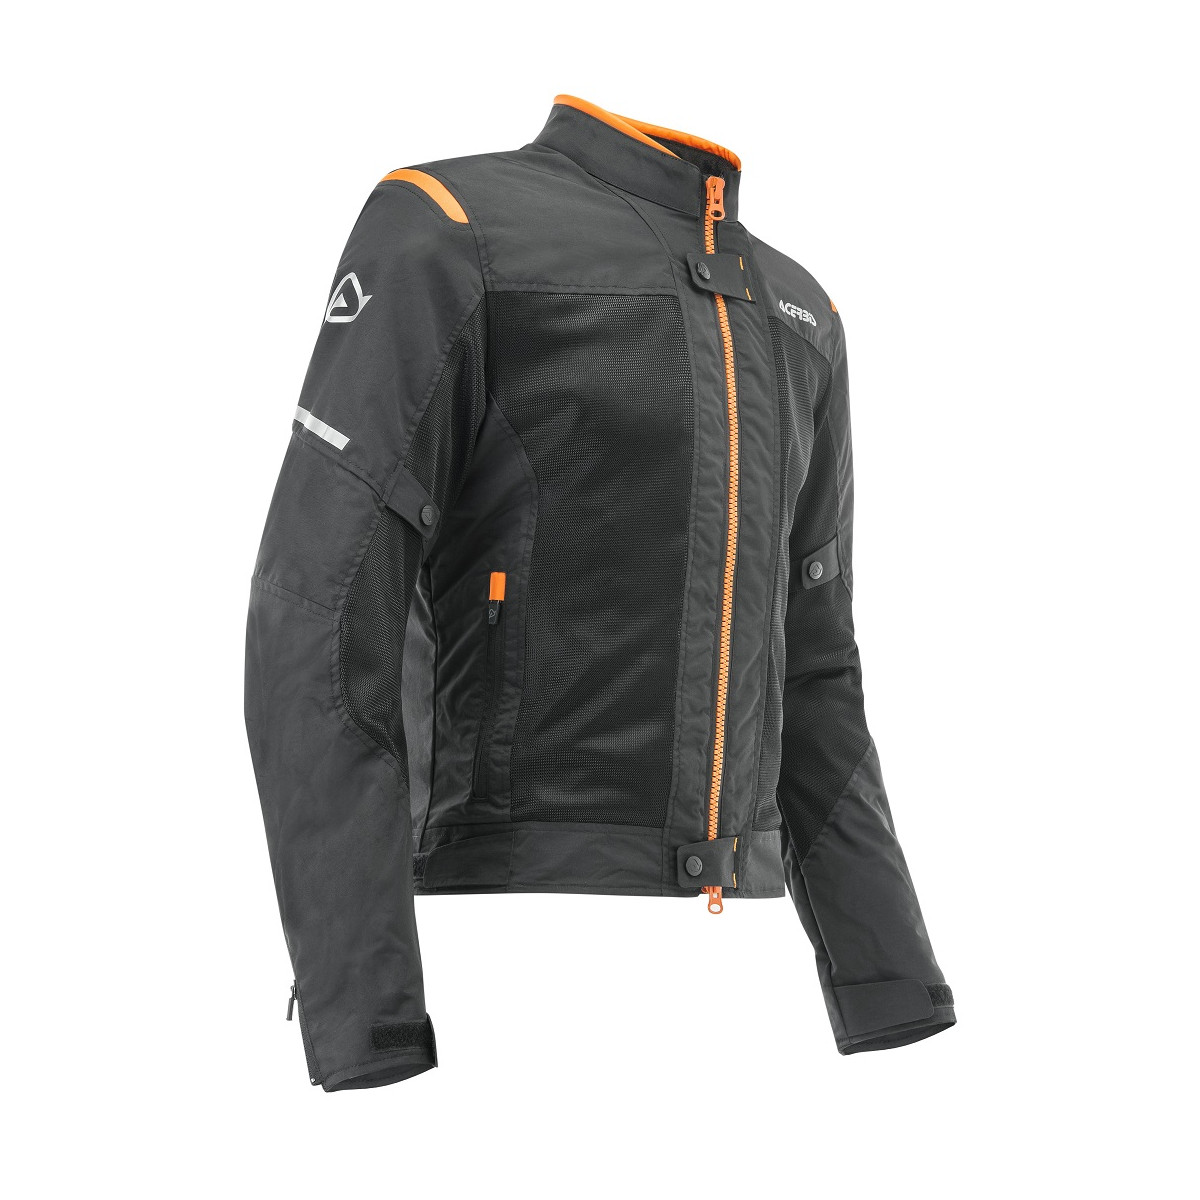 ACERBIS - RAMSEY MY VENTED 2.0 JACKET - BLACK ORANGE